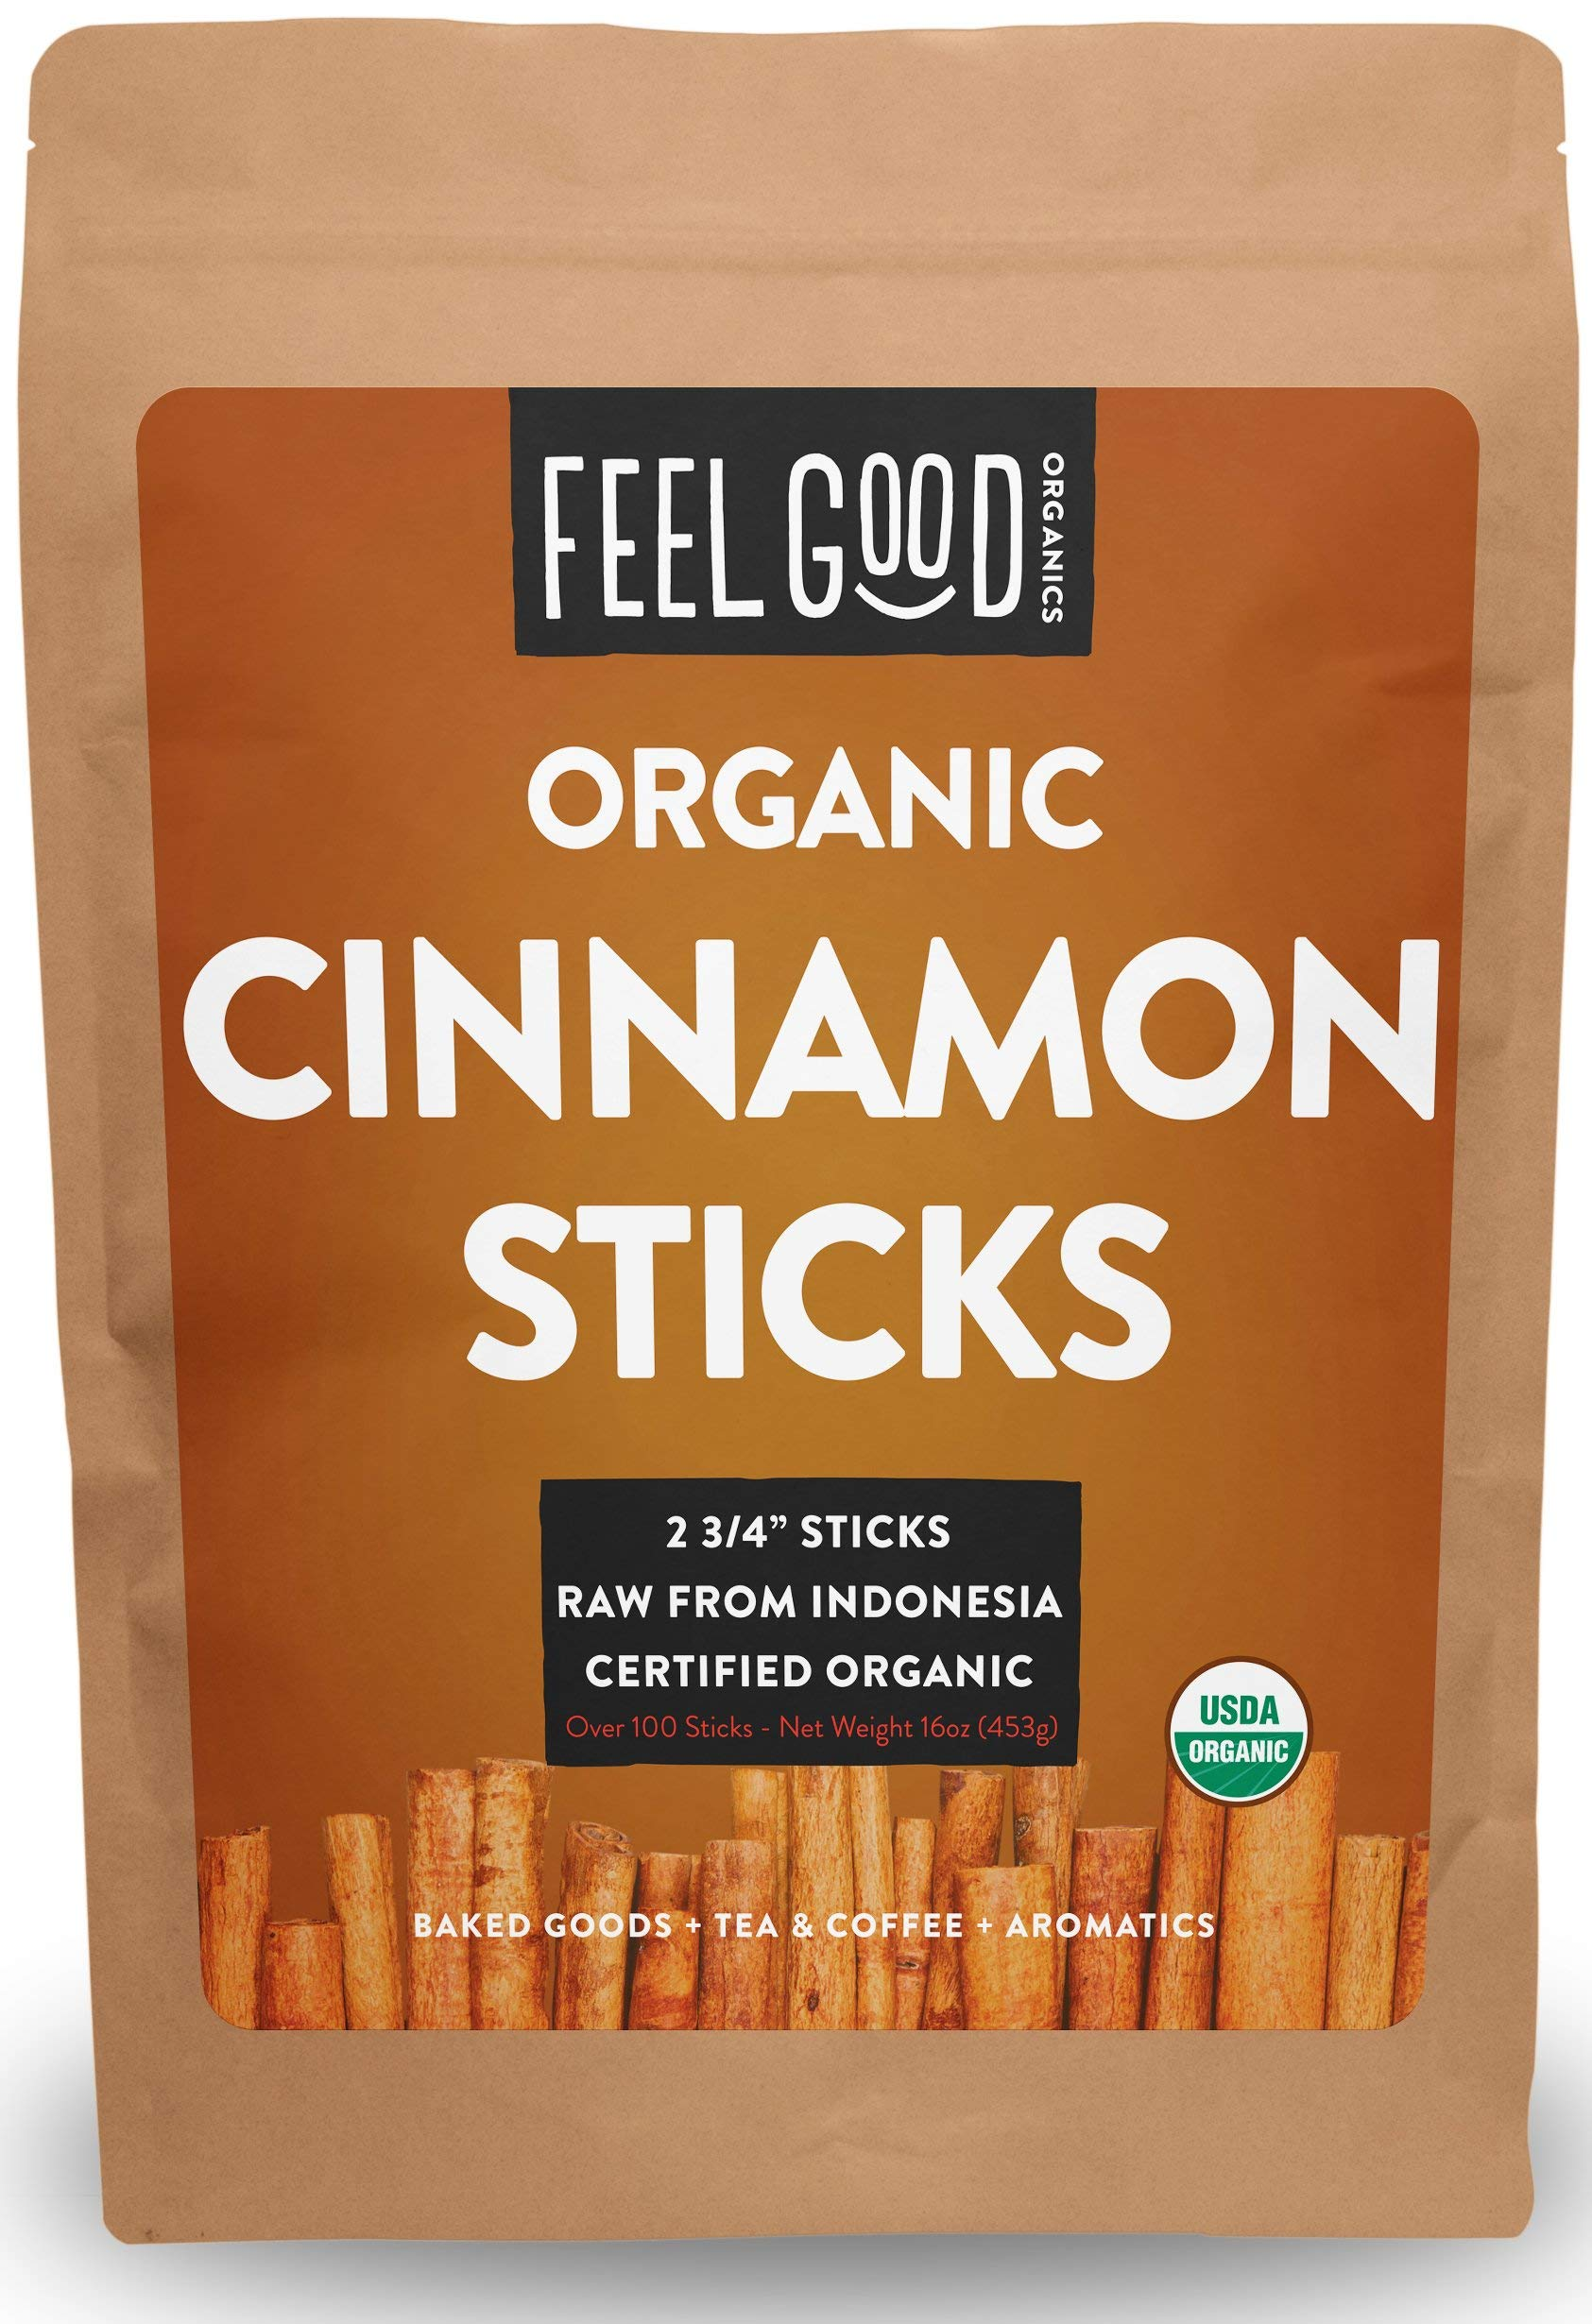 """Organic Korintje Cinnamon Sticks - Perfect for Baking, Cooking & Beverages - 100+ Sticks - 2 3/4"""" Length - 100% Raw From Indonesia - by Feel Good Organics"""